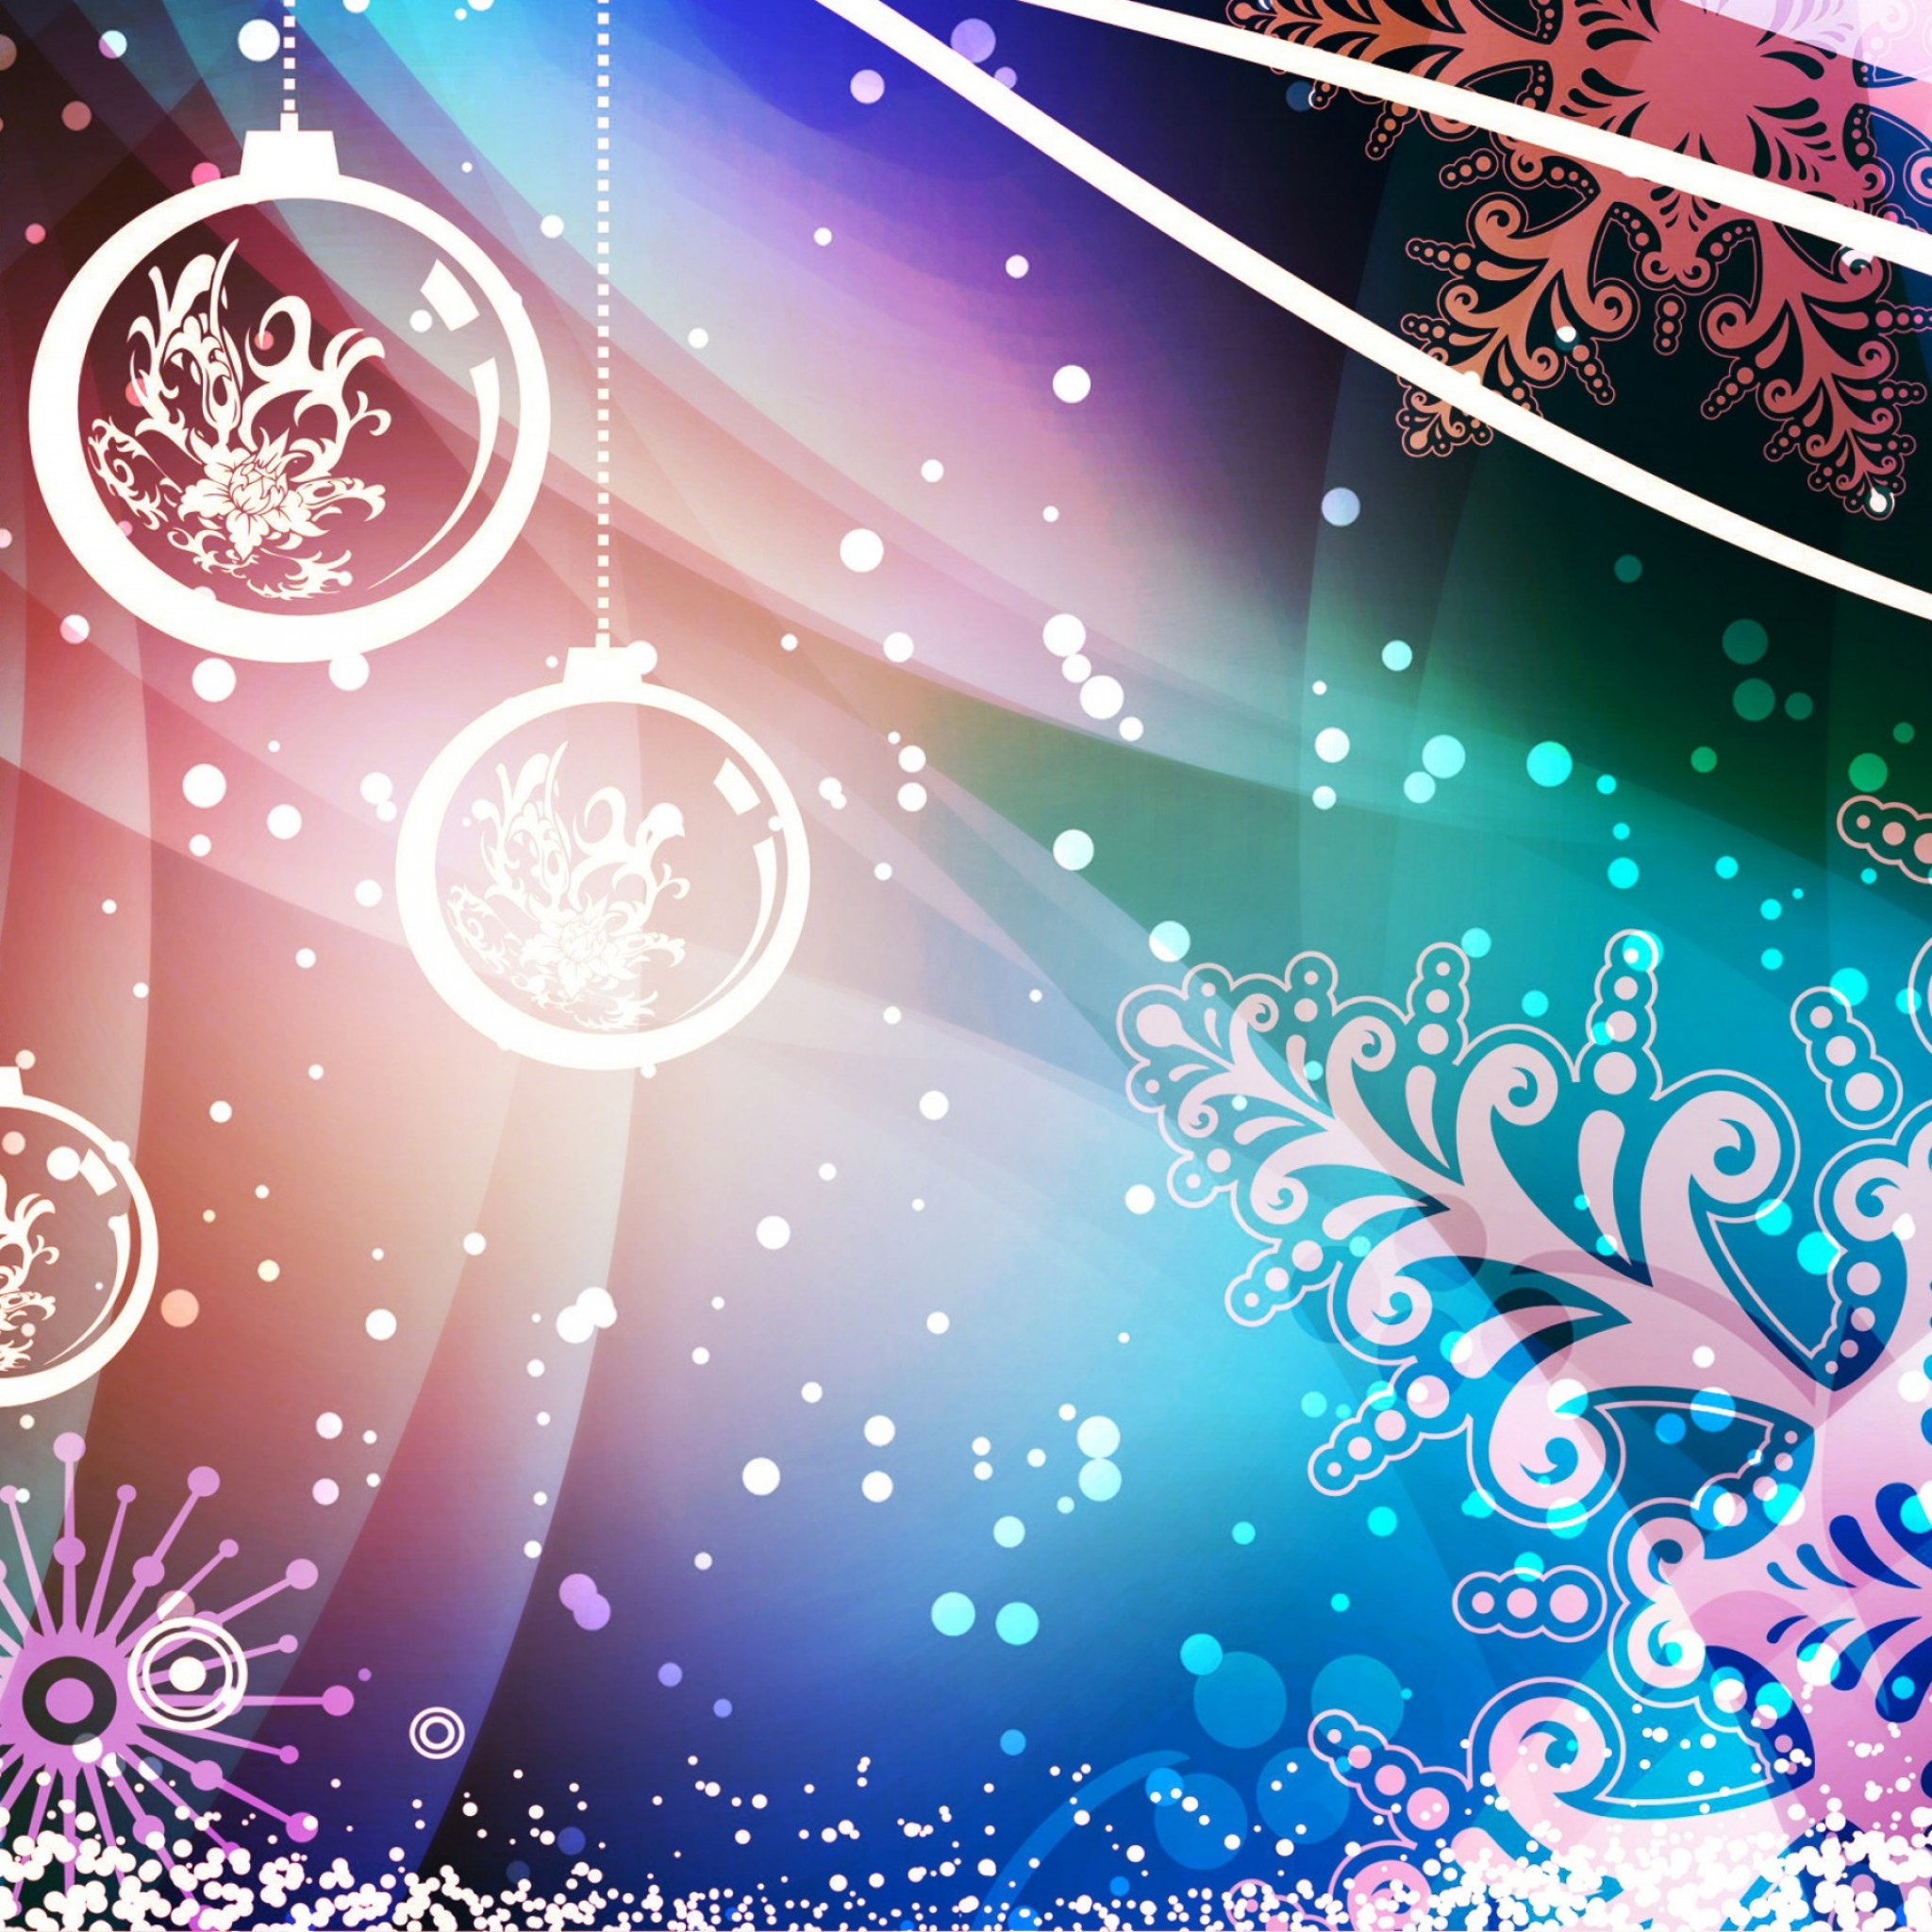 New iPad HD Christmas Wallpaper - WallpaperSafari